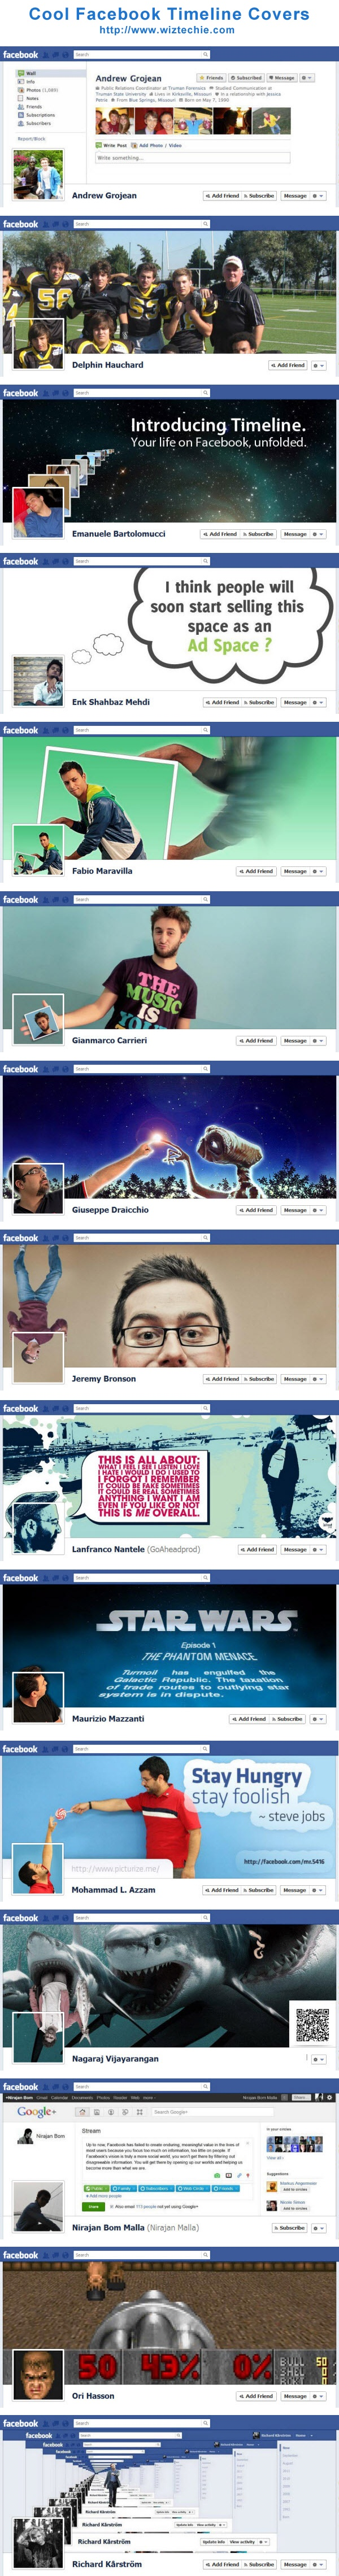 best ideas about fb timeline cover timeline cool facebook timeline covers facebook timeline template for your cover page